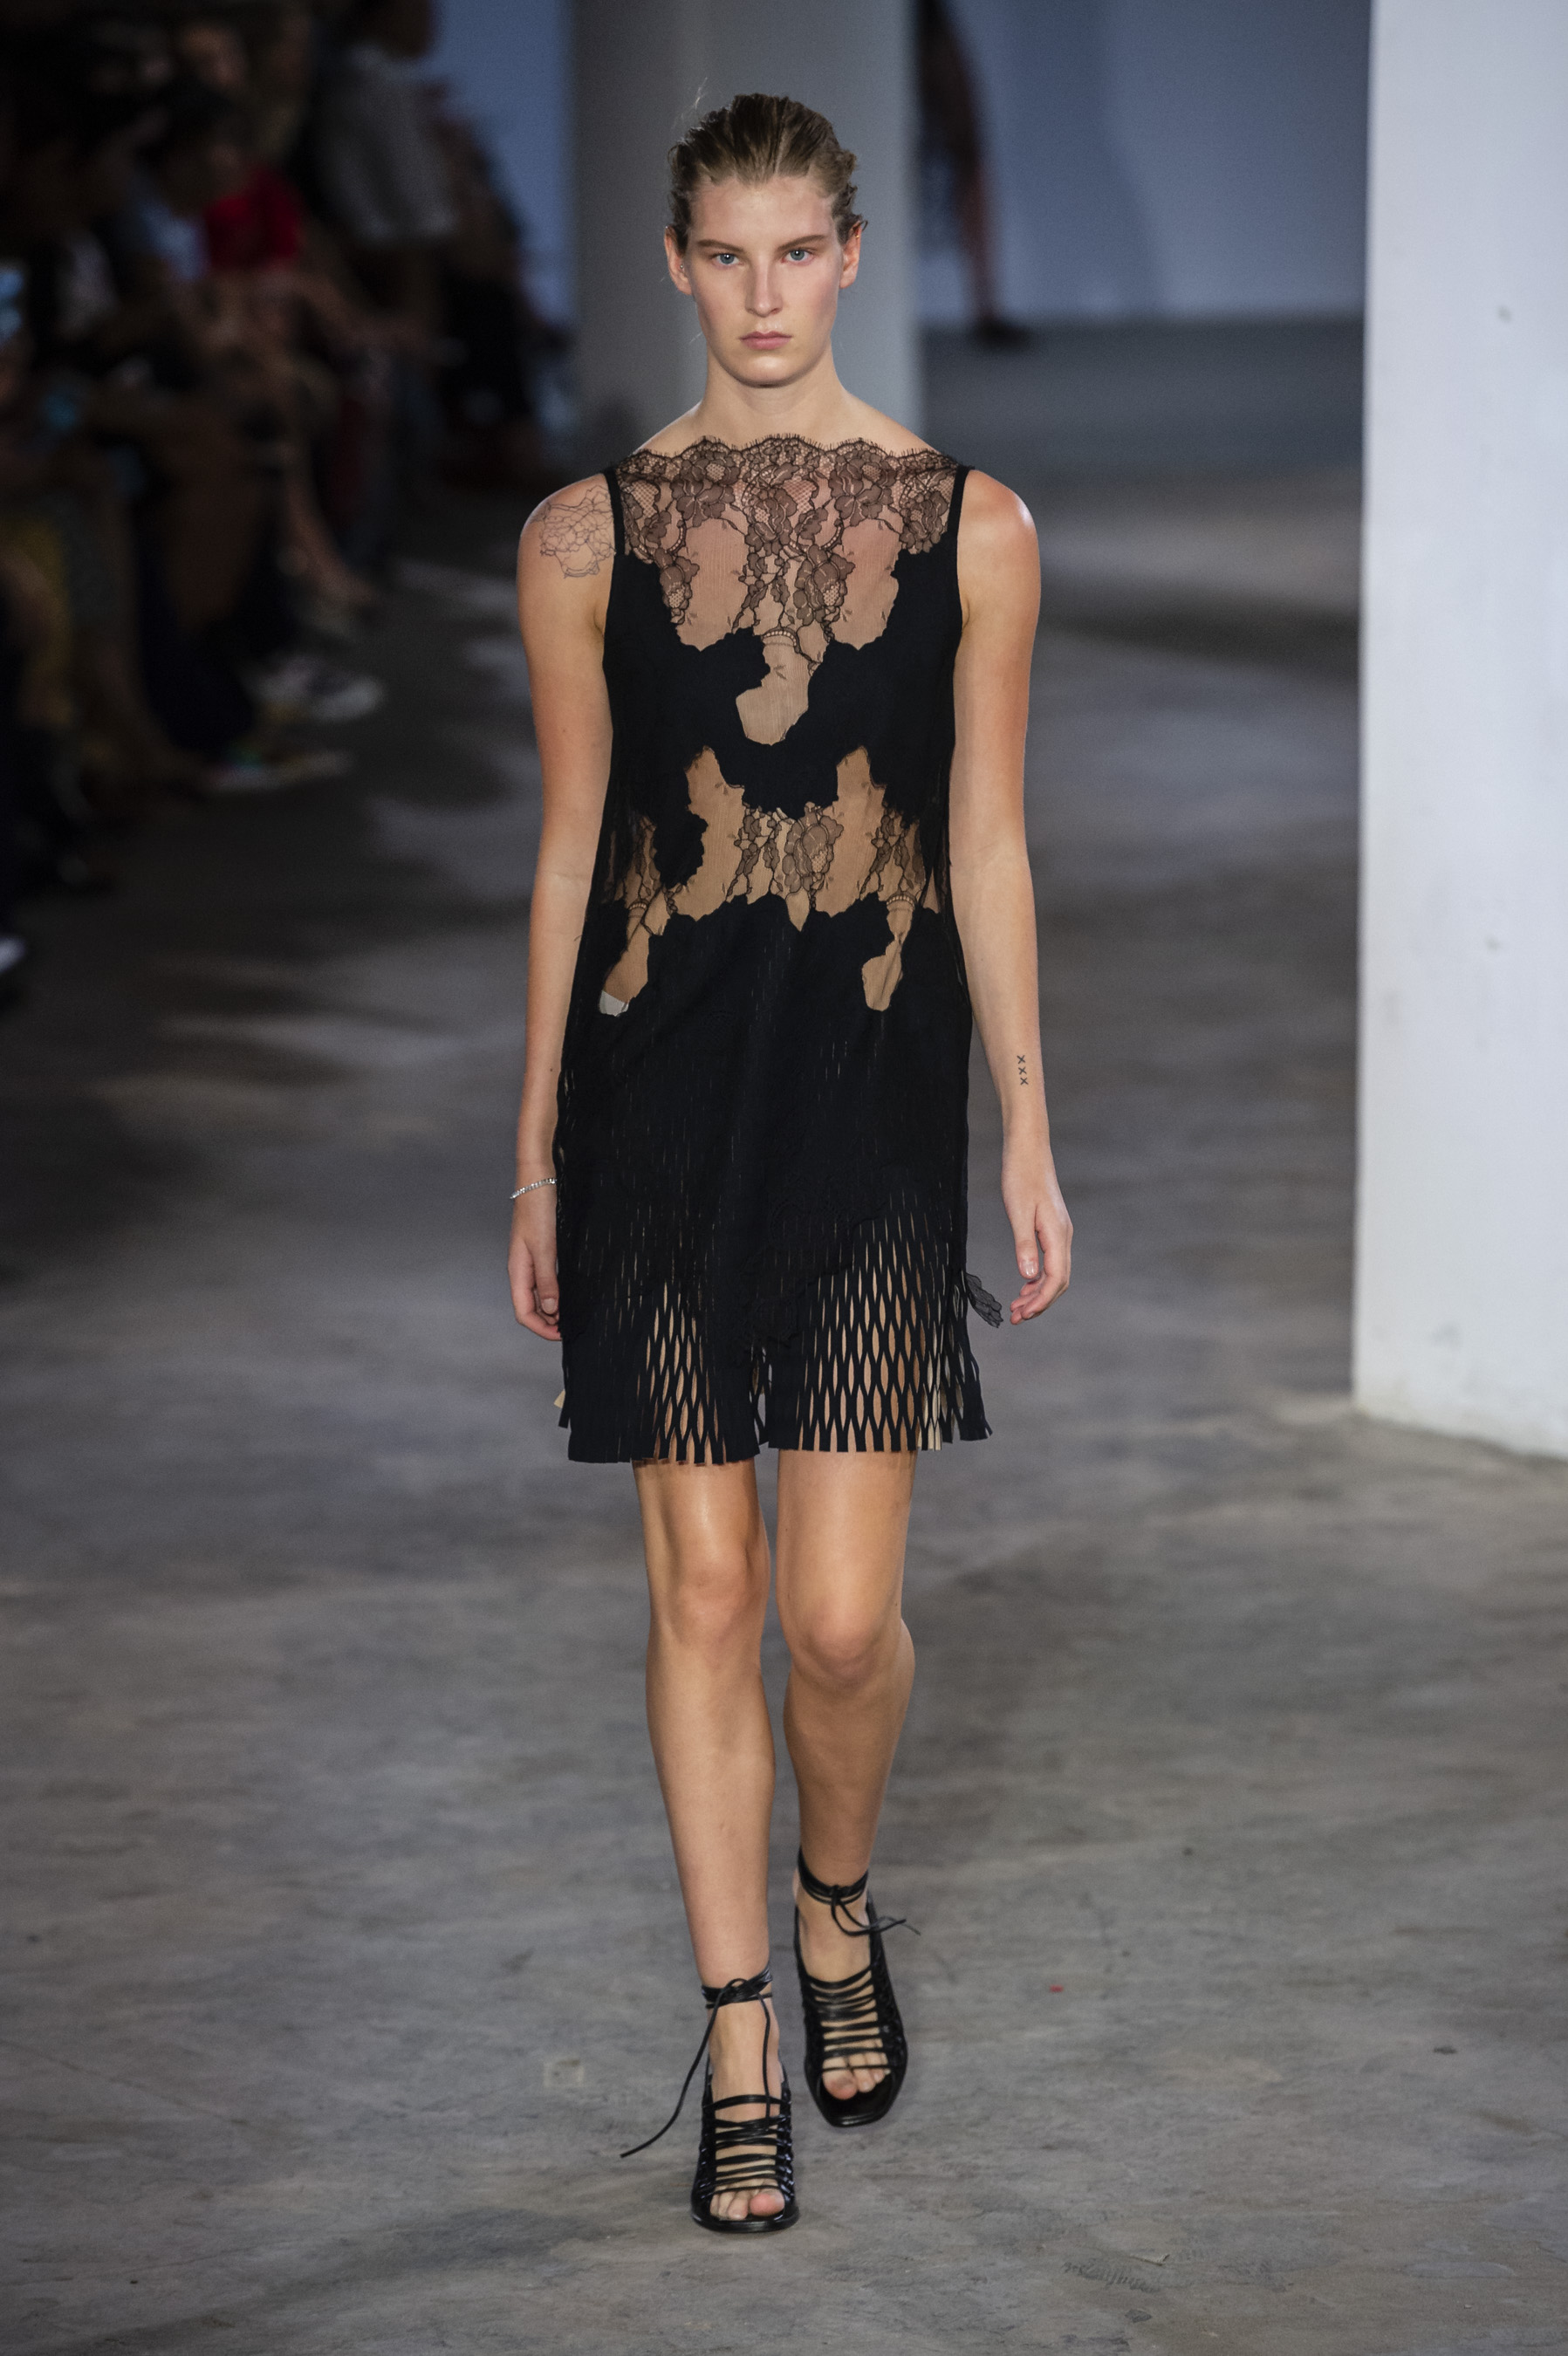 Dion Lee Runway Erosion Lace Mini Dress Tie Up Sandals Spring 19 RTW